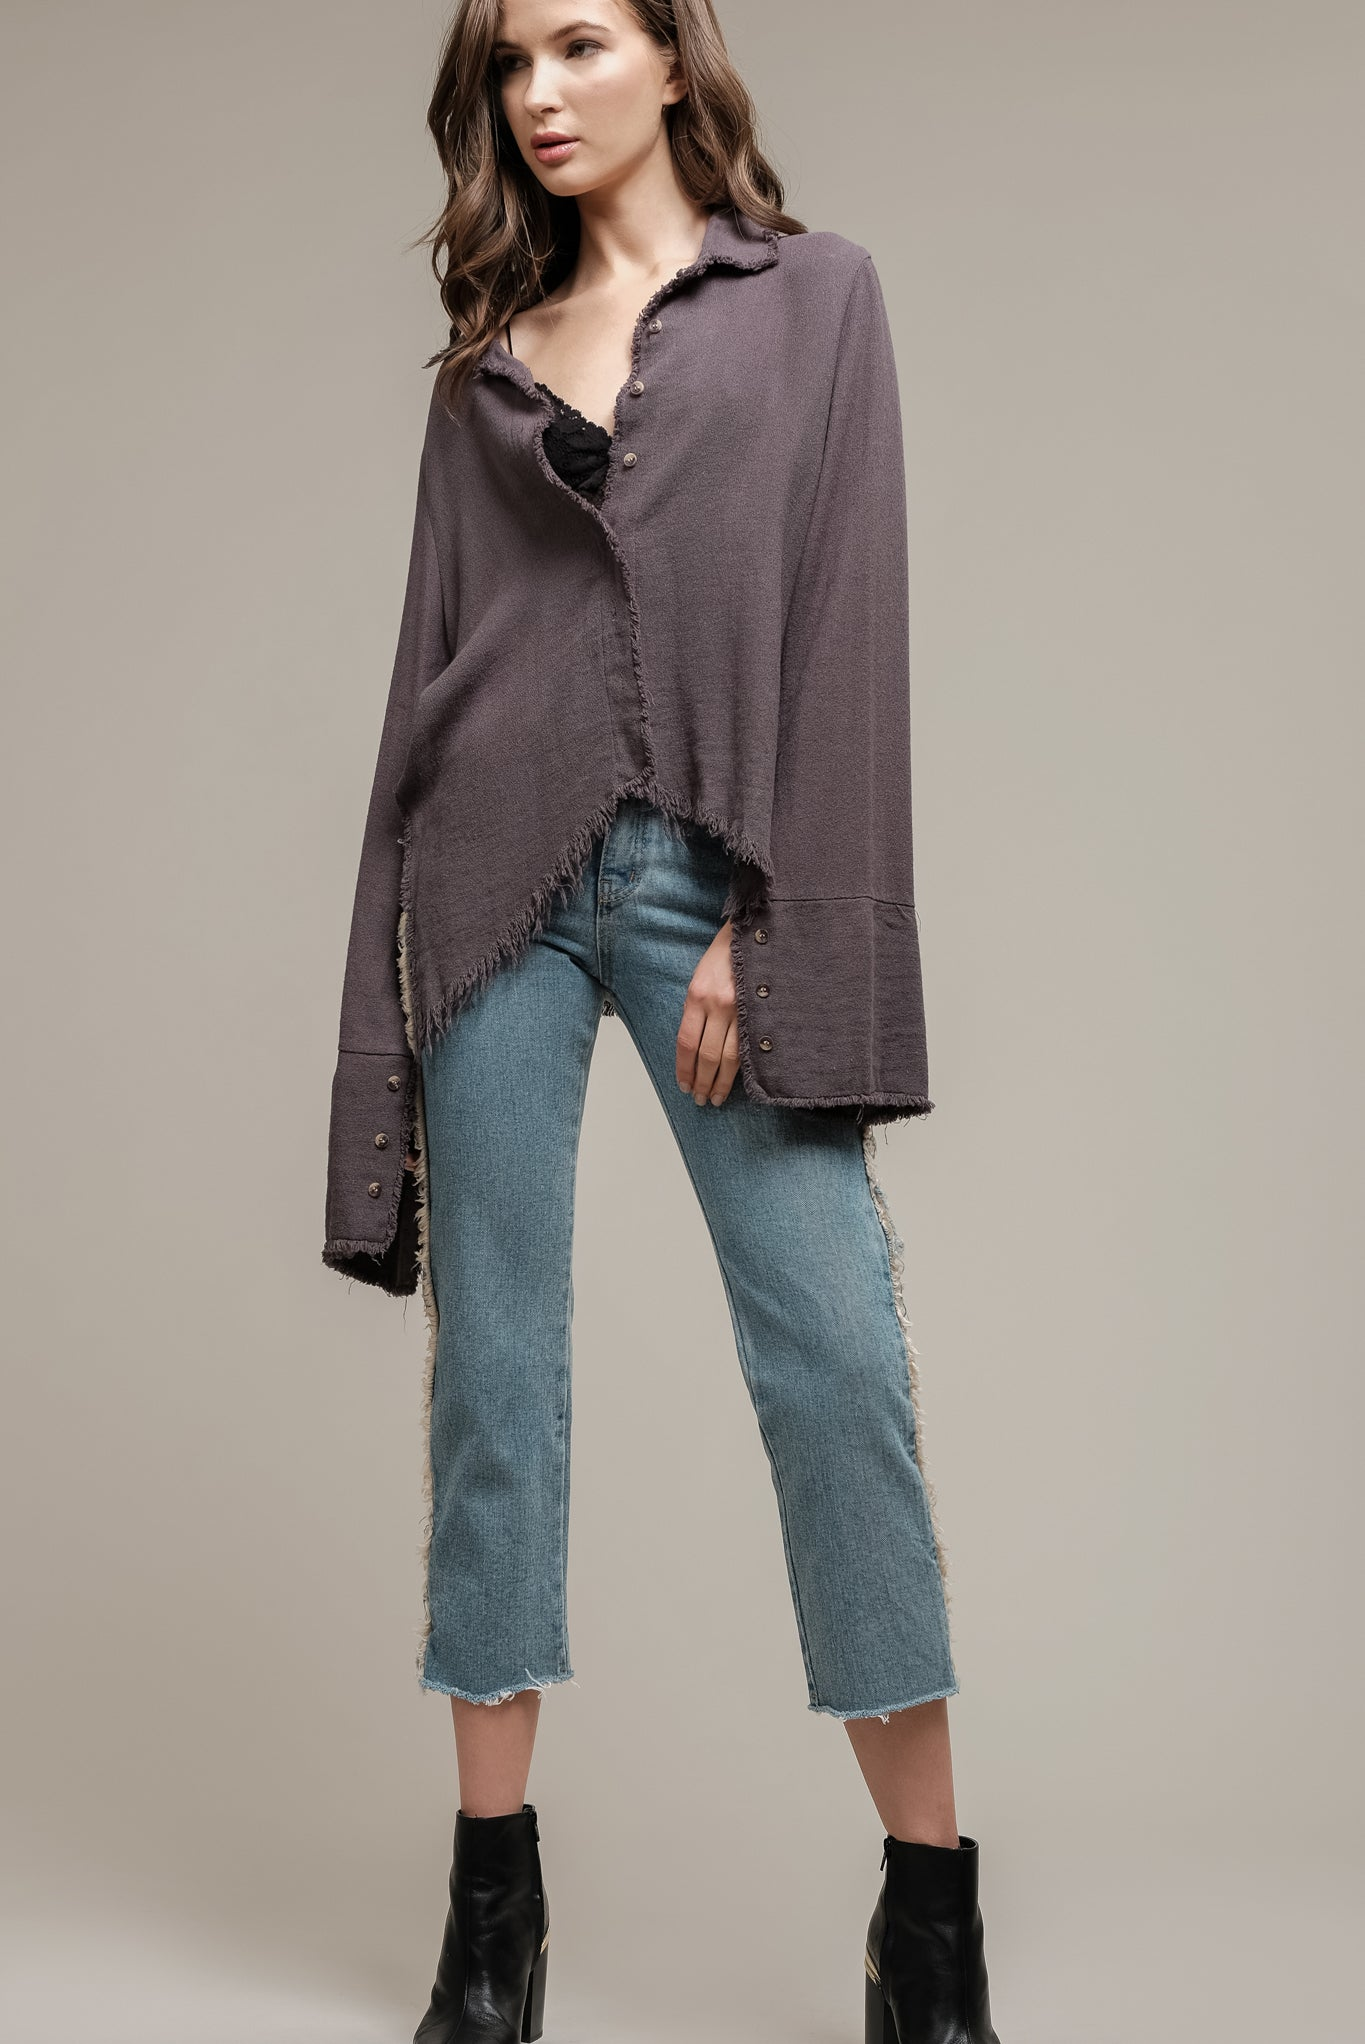 LINEN SHIRT WITH FRAYED HEM